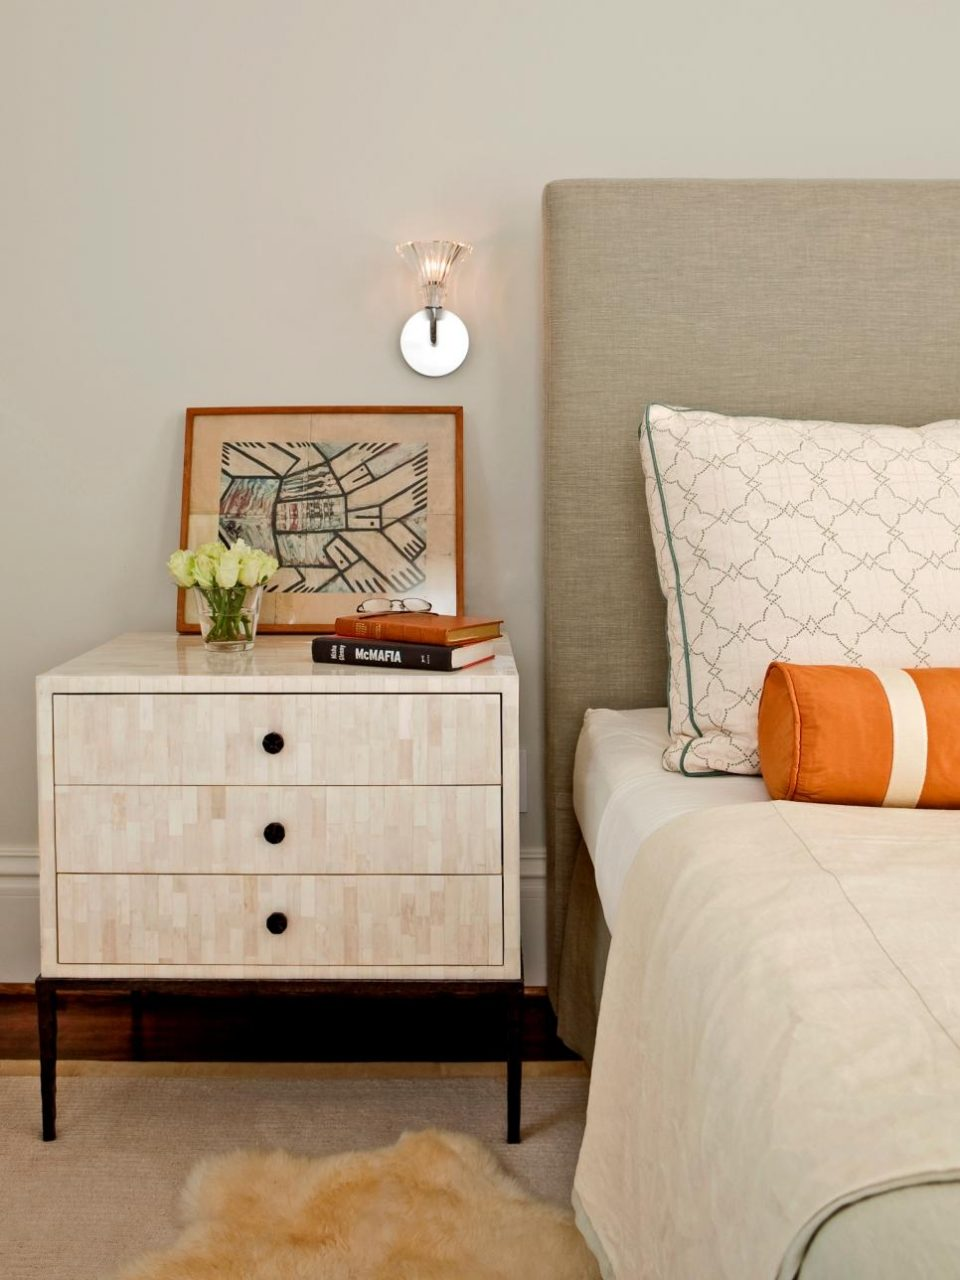 Bedroom Nightstand Ideas Home Design Gallery Ideas